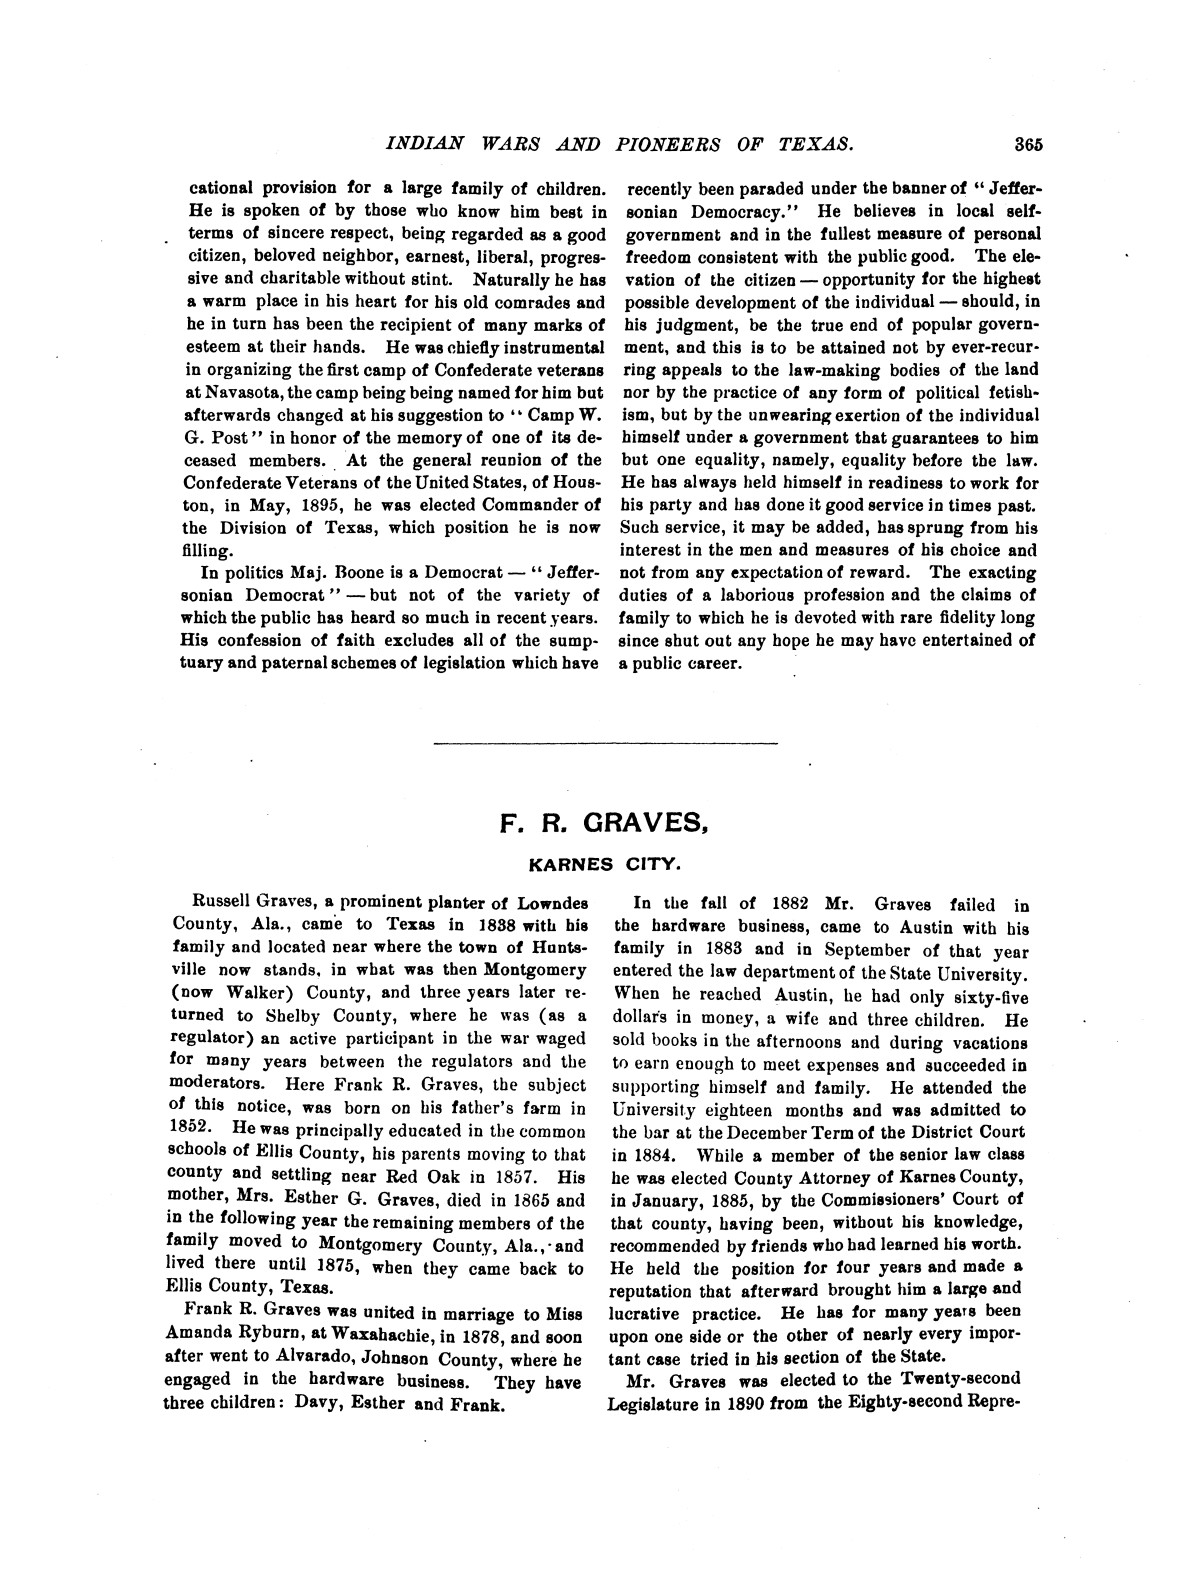 Indian wars and pioneers of Texas / by John Henry Brown.                                                                                                      [Sequence #]: 440 of 894